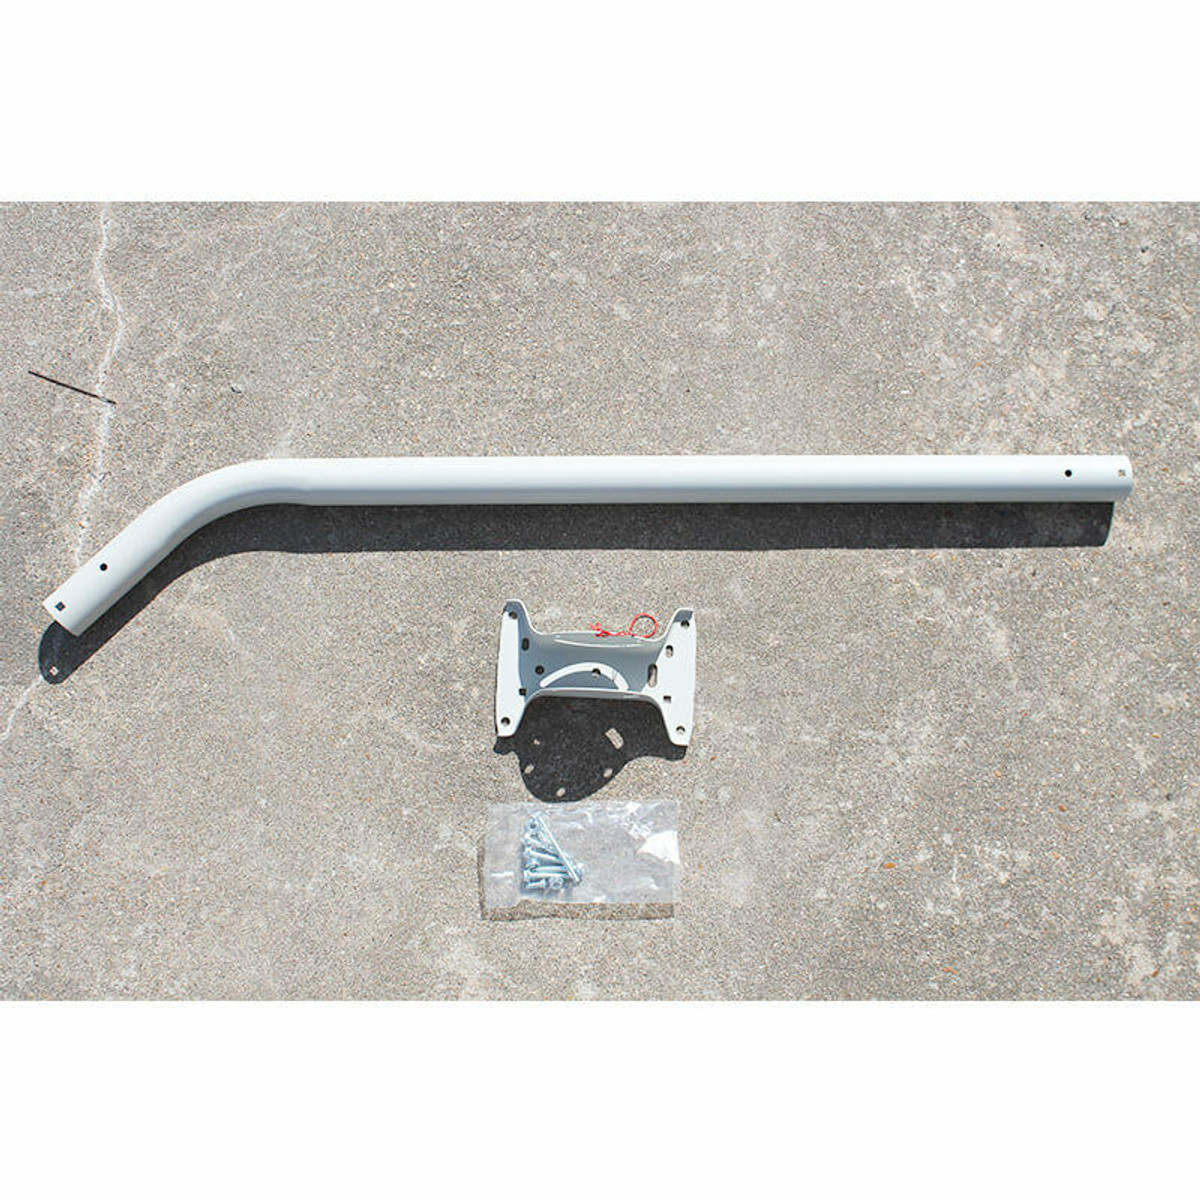 SignalBoosters 38-inch J Pole Antenna Mount with Adjustable Base